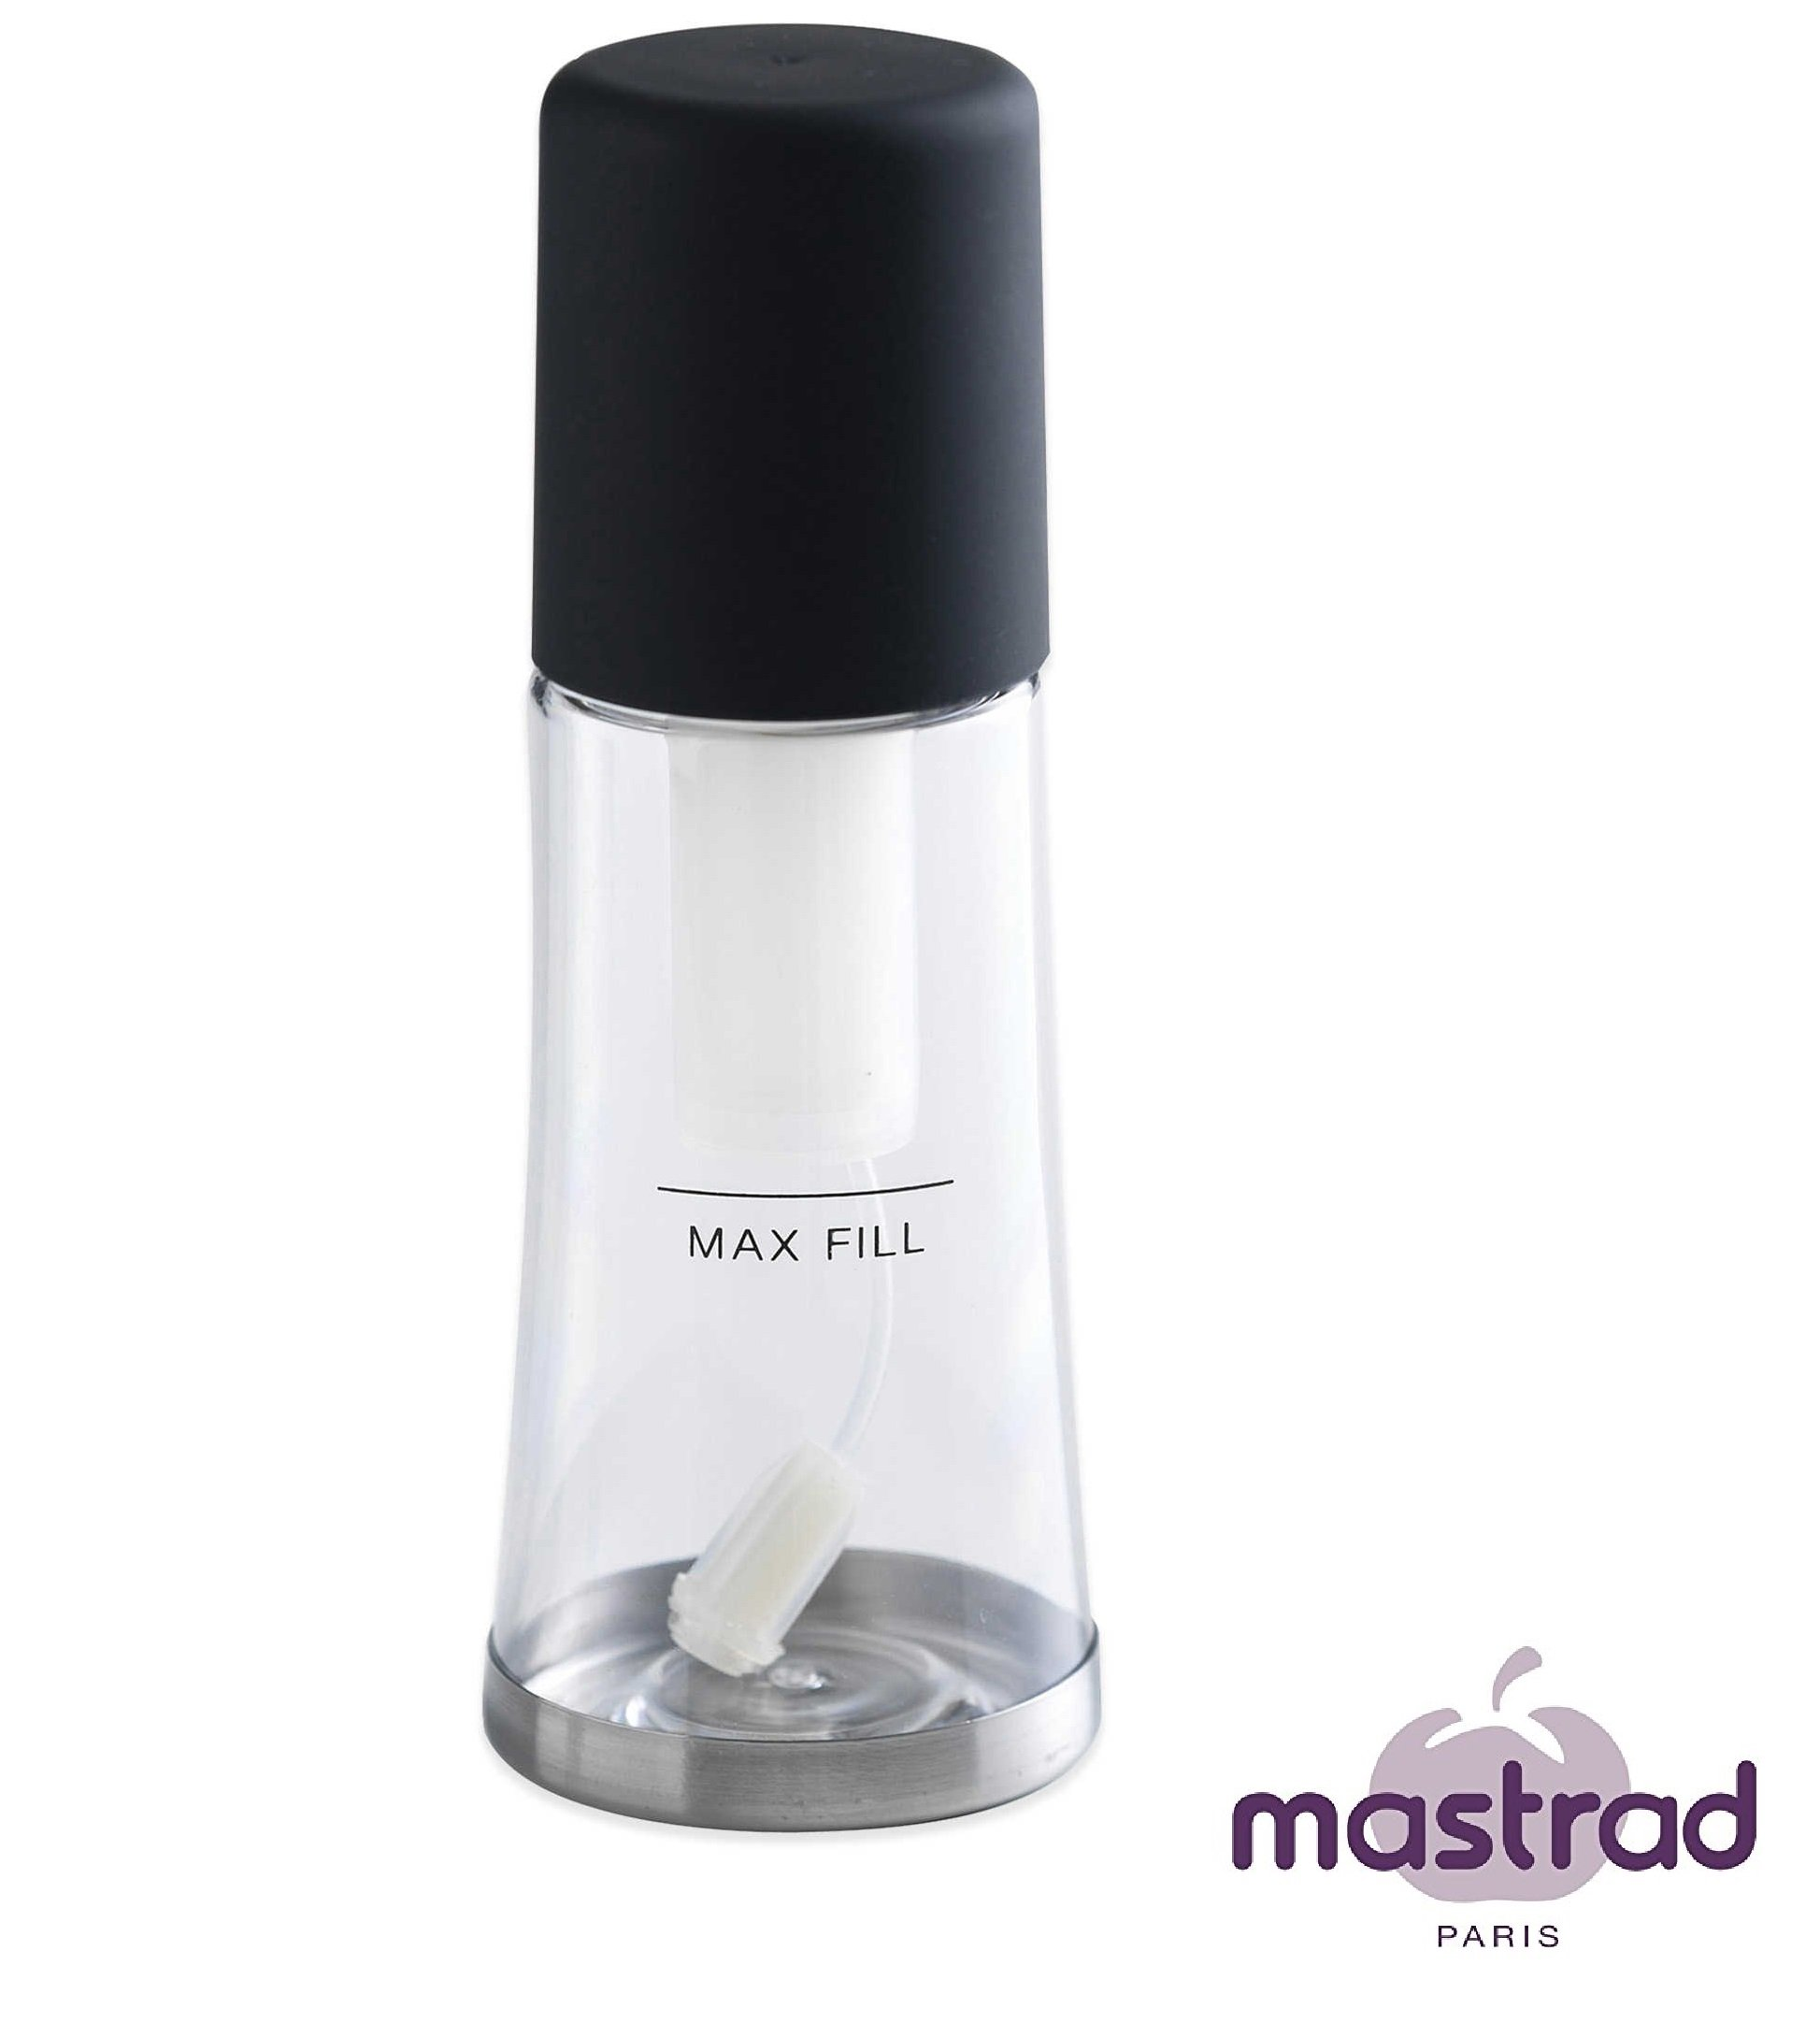 Olive Oil Mister - Oil Olive Sprayer Creates A Thin and Even Coat Of Oil On Salads, Breads, and More - 3.25 Ounces, by Mastrad (Black)